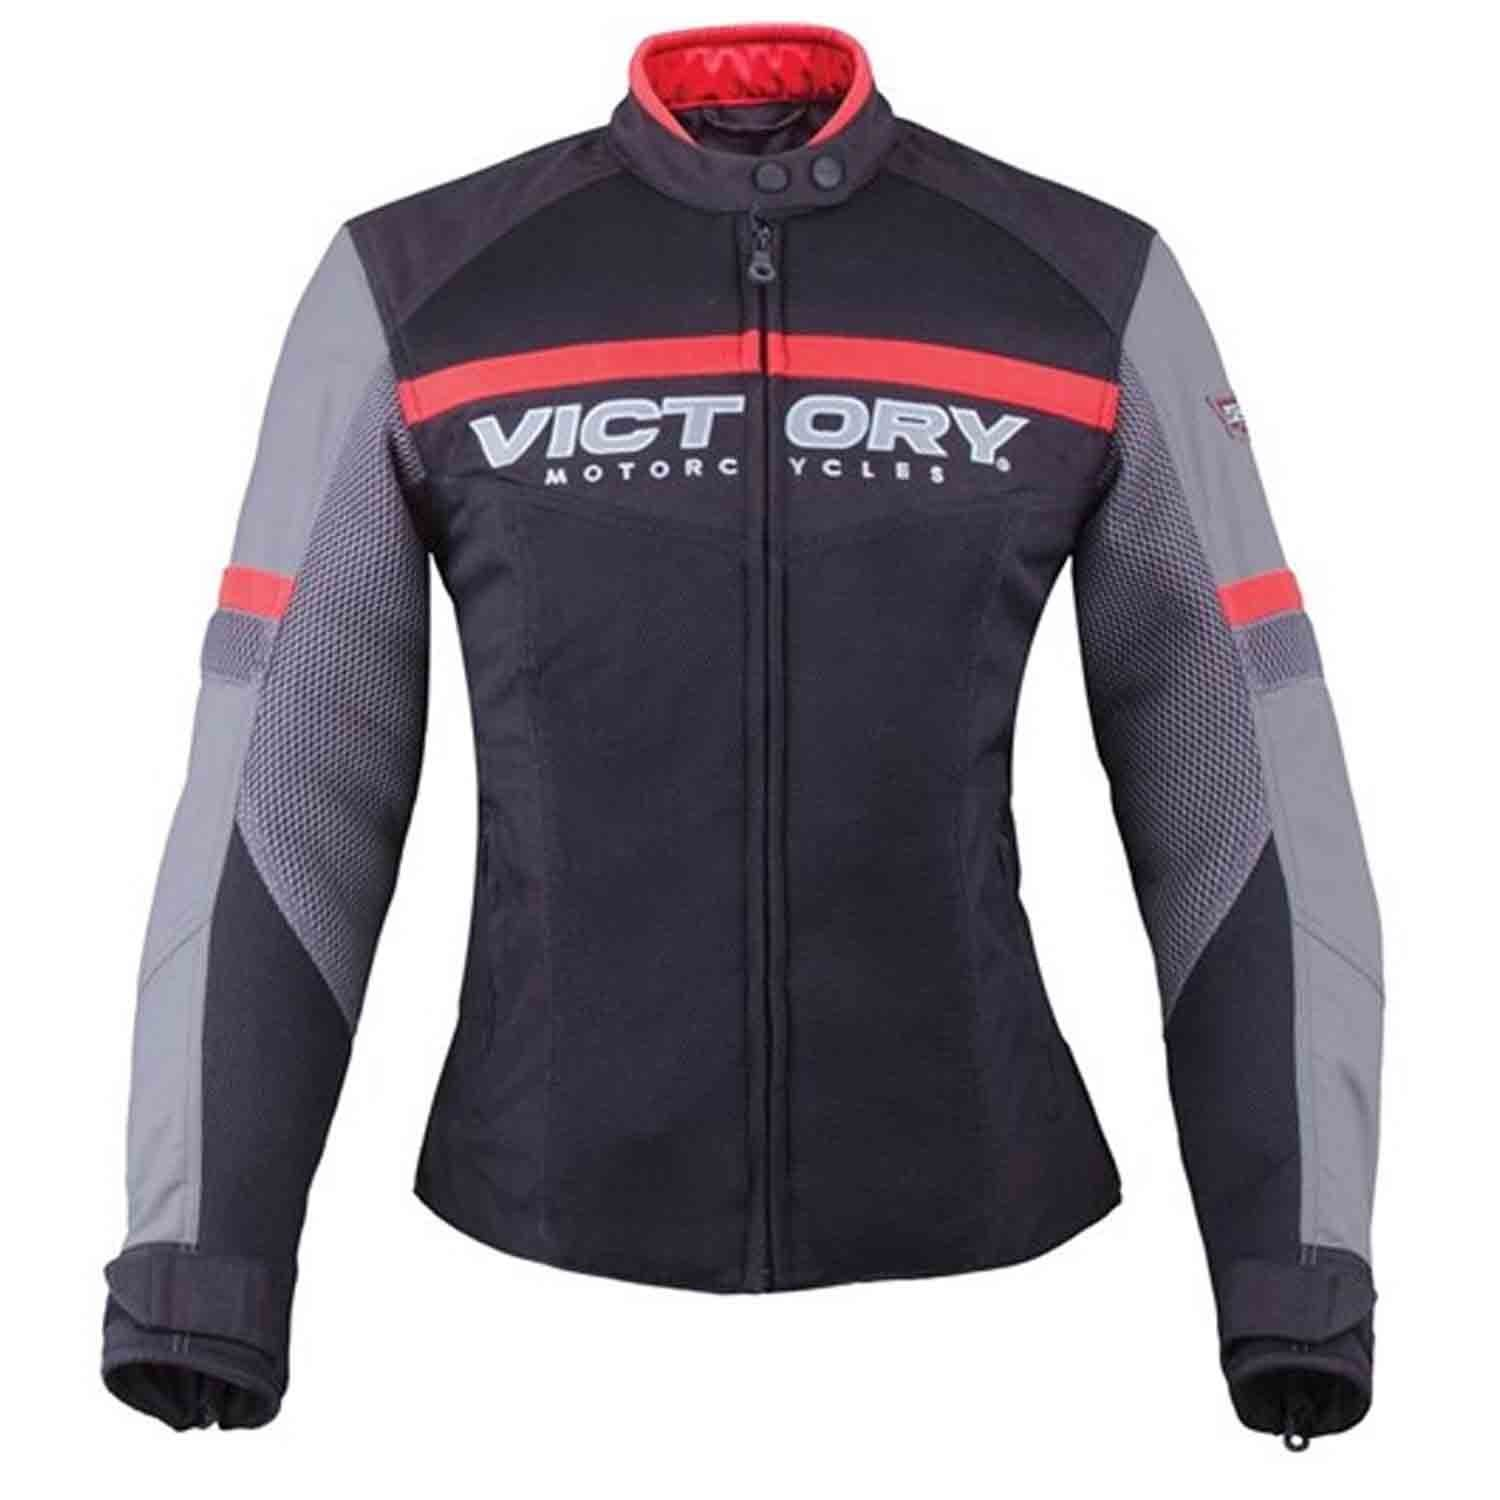 Victory Motorcycle New OEM Women's Skyline Mesh Riding Jacket, Small, 286373702